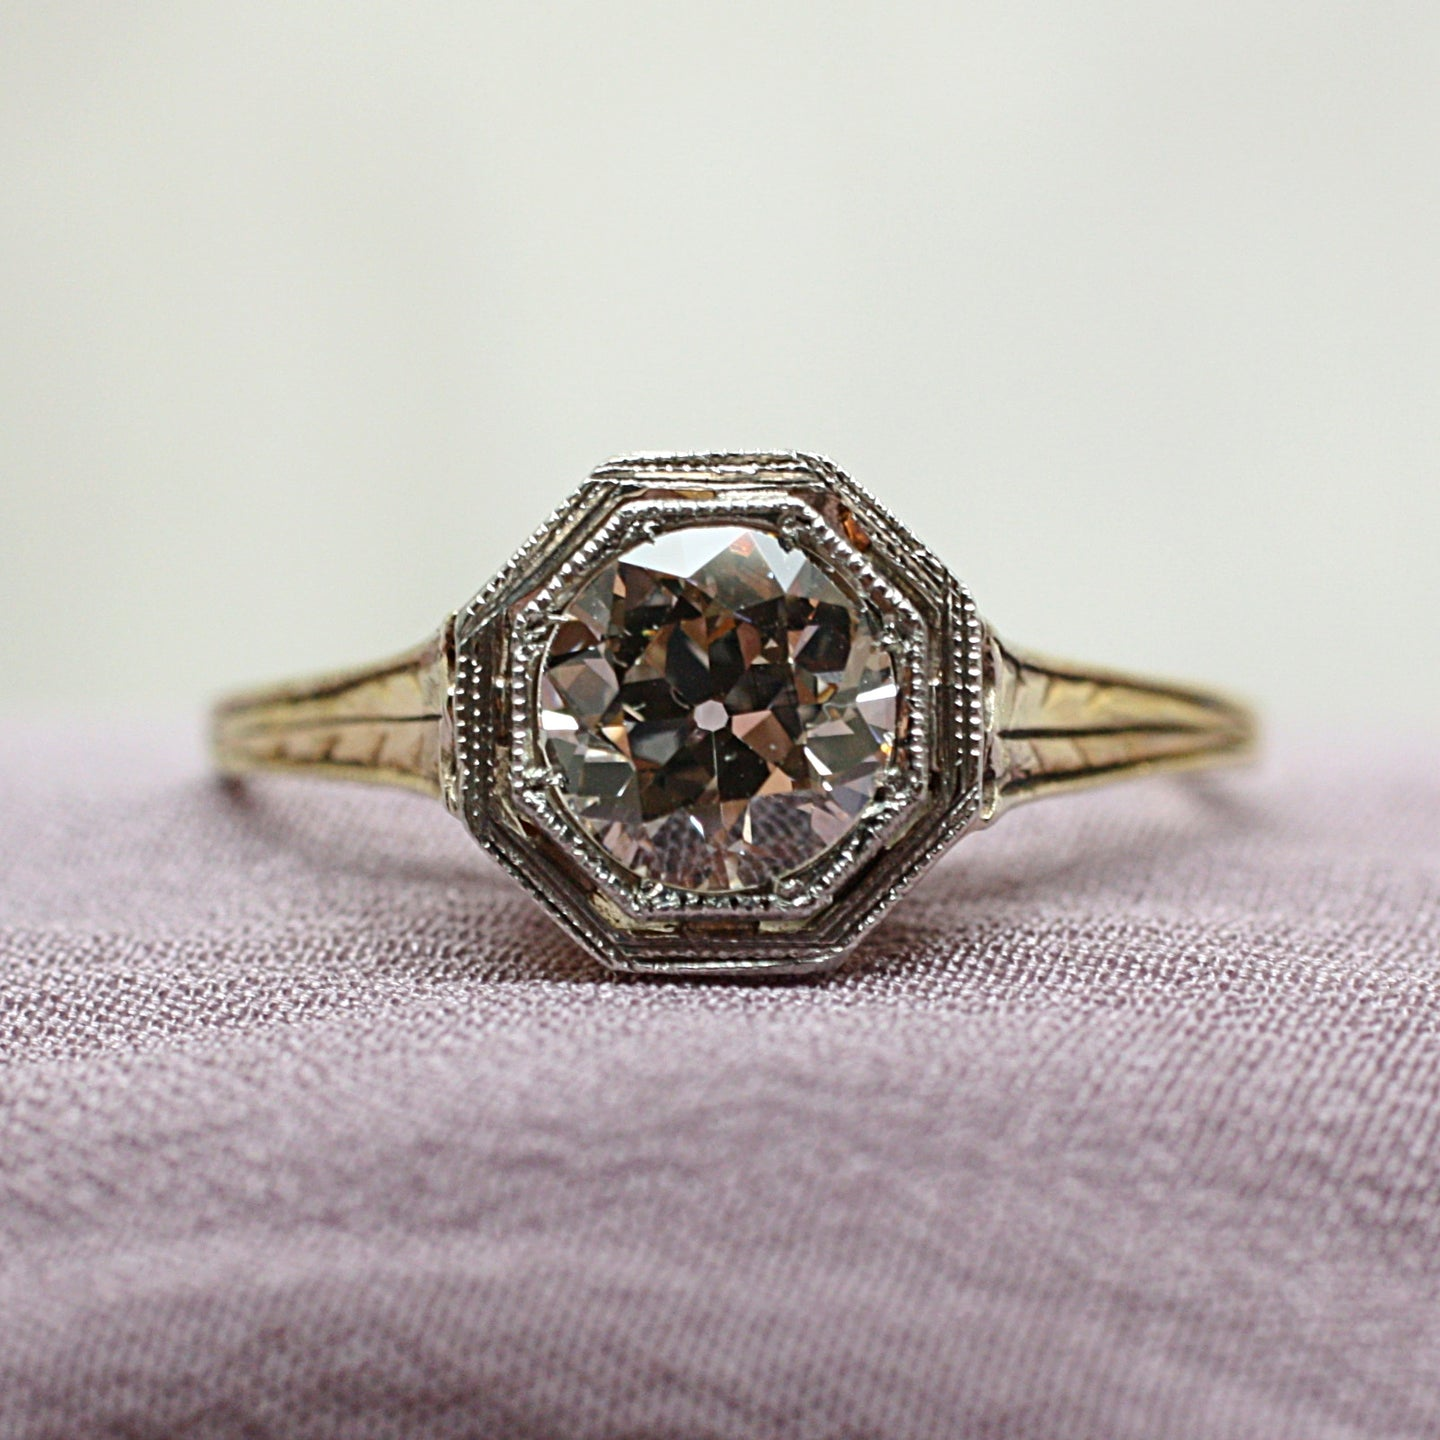 c1930 Deco Two-Tone Solitaire